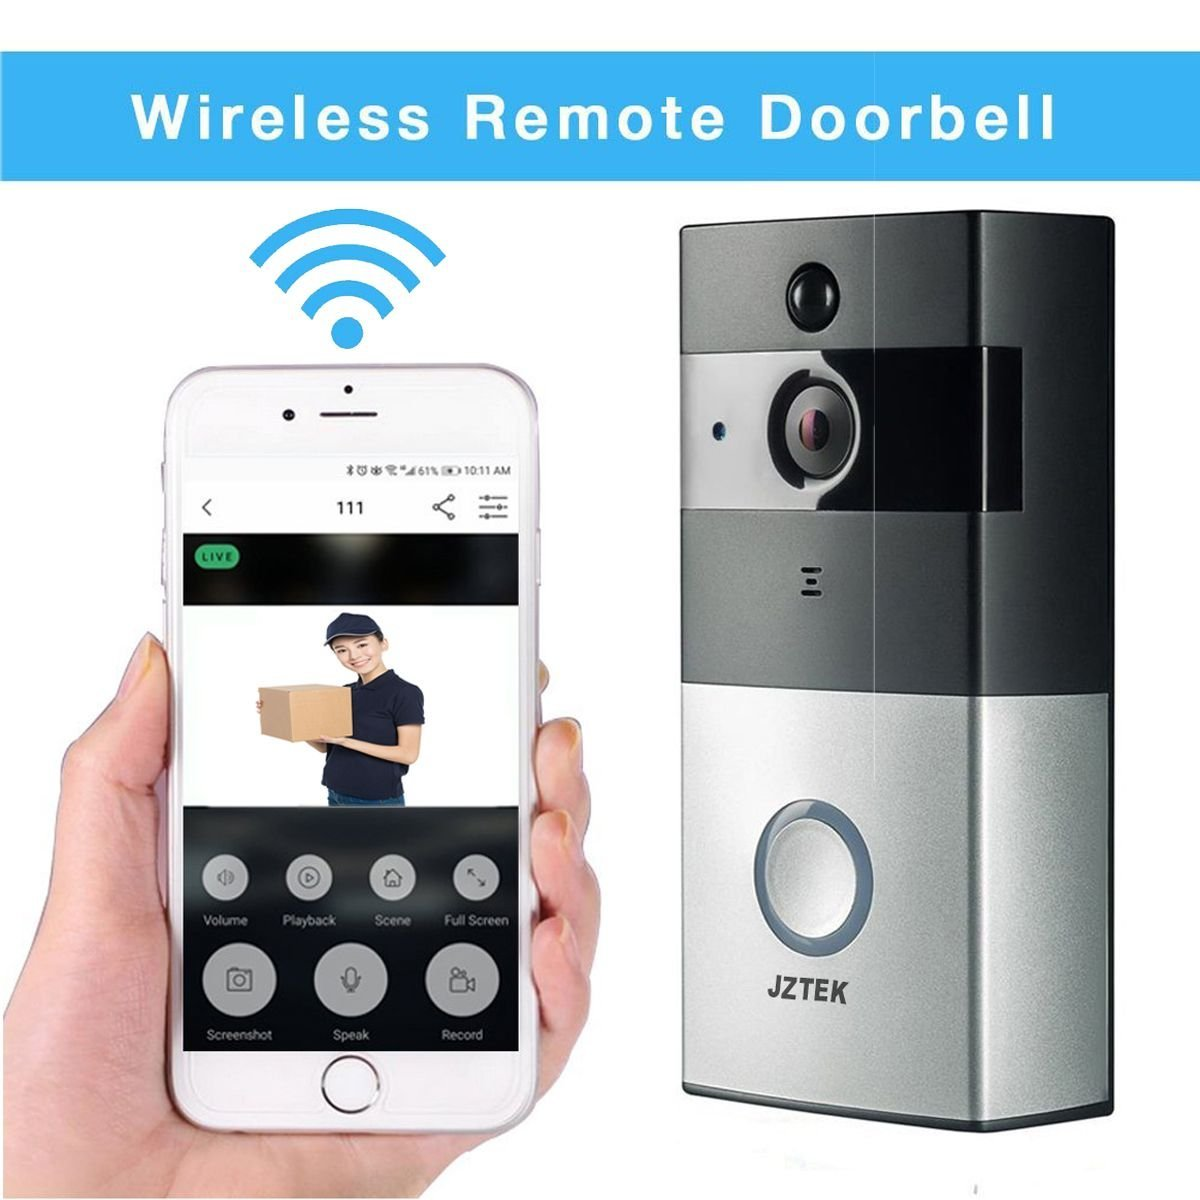 Video Doorbell - JZTEKSmart Doorbell 720P HD WiFi Security Camera with 8G Memory Storage, Real-Time Two-Way Talk and Video, Night Vision, PIR Motion Detection and App Control for iOS and Android